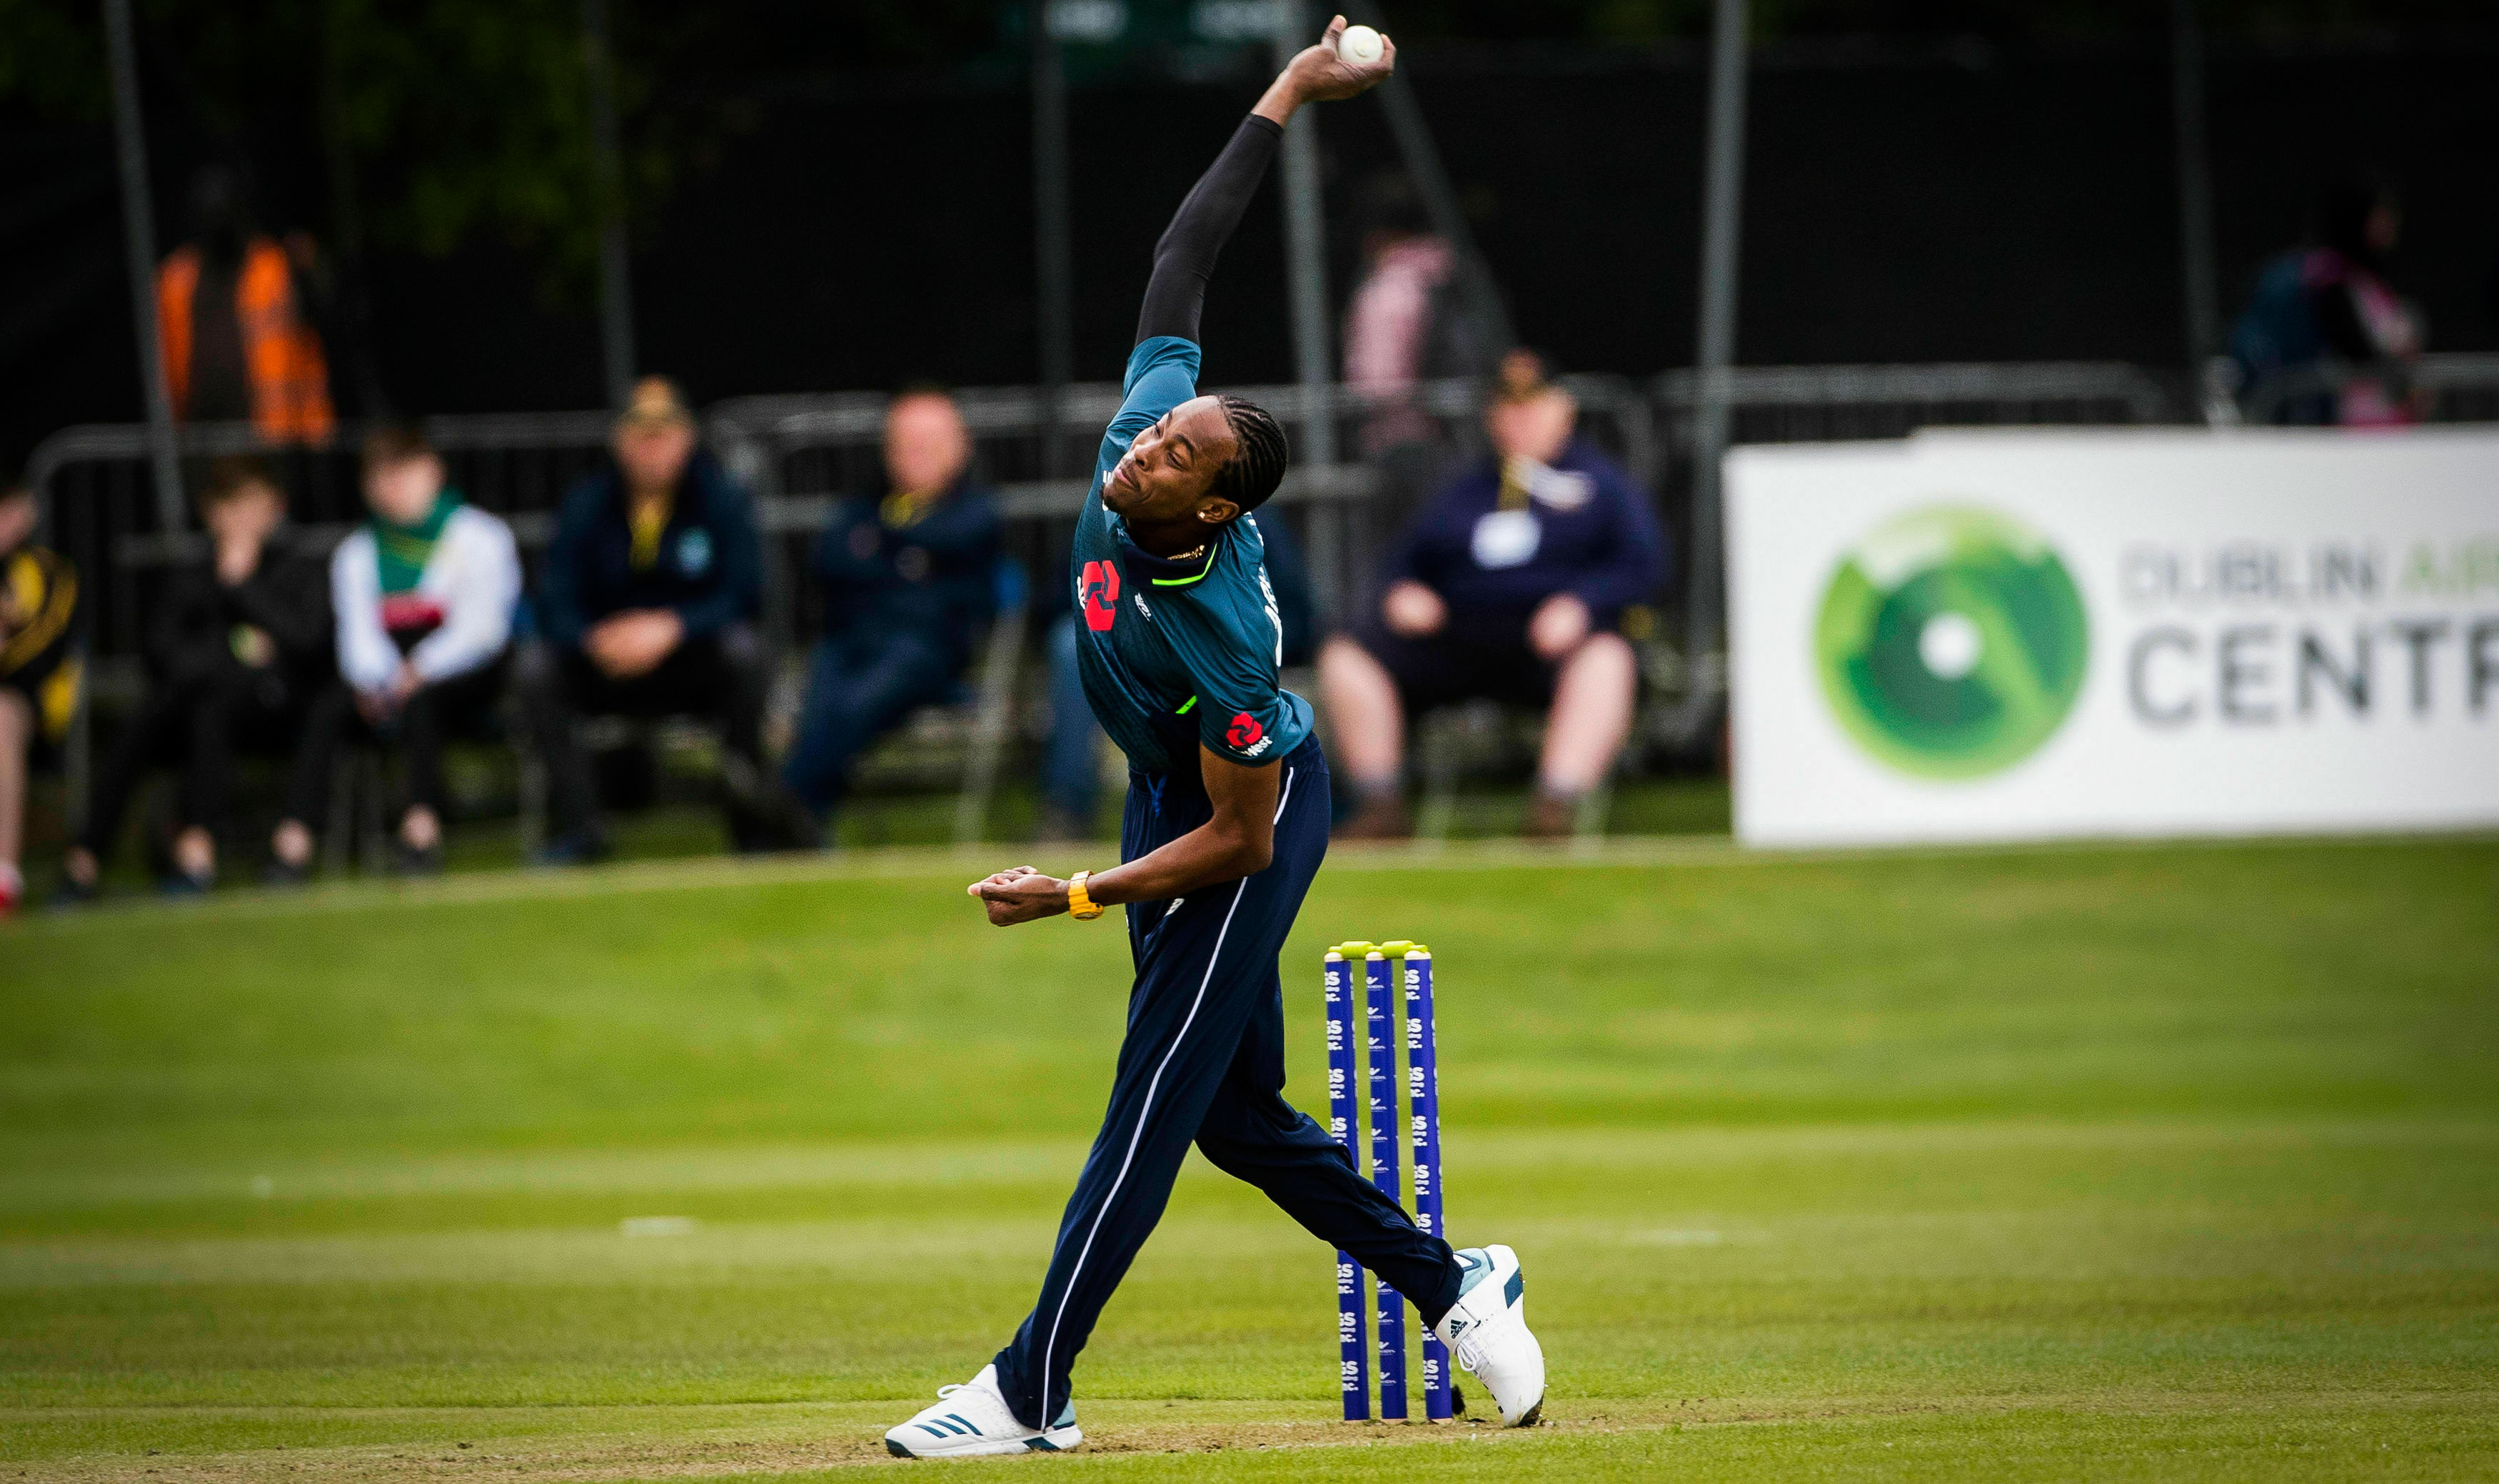 Jofra Archer bowls during the ODI cricket match against Ireland at Malahide Cricket Club, Dublin, on May 3, 2019.